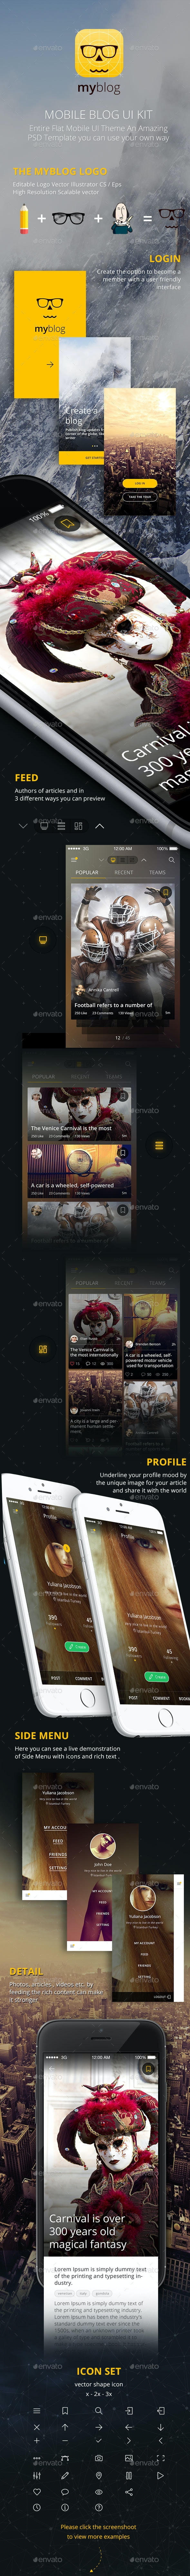 Blog Mobile UI Template - User Interfaces Web Elements